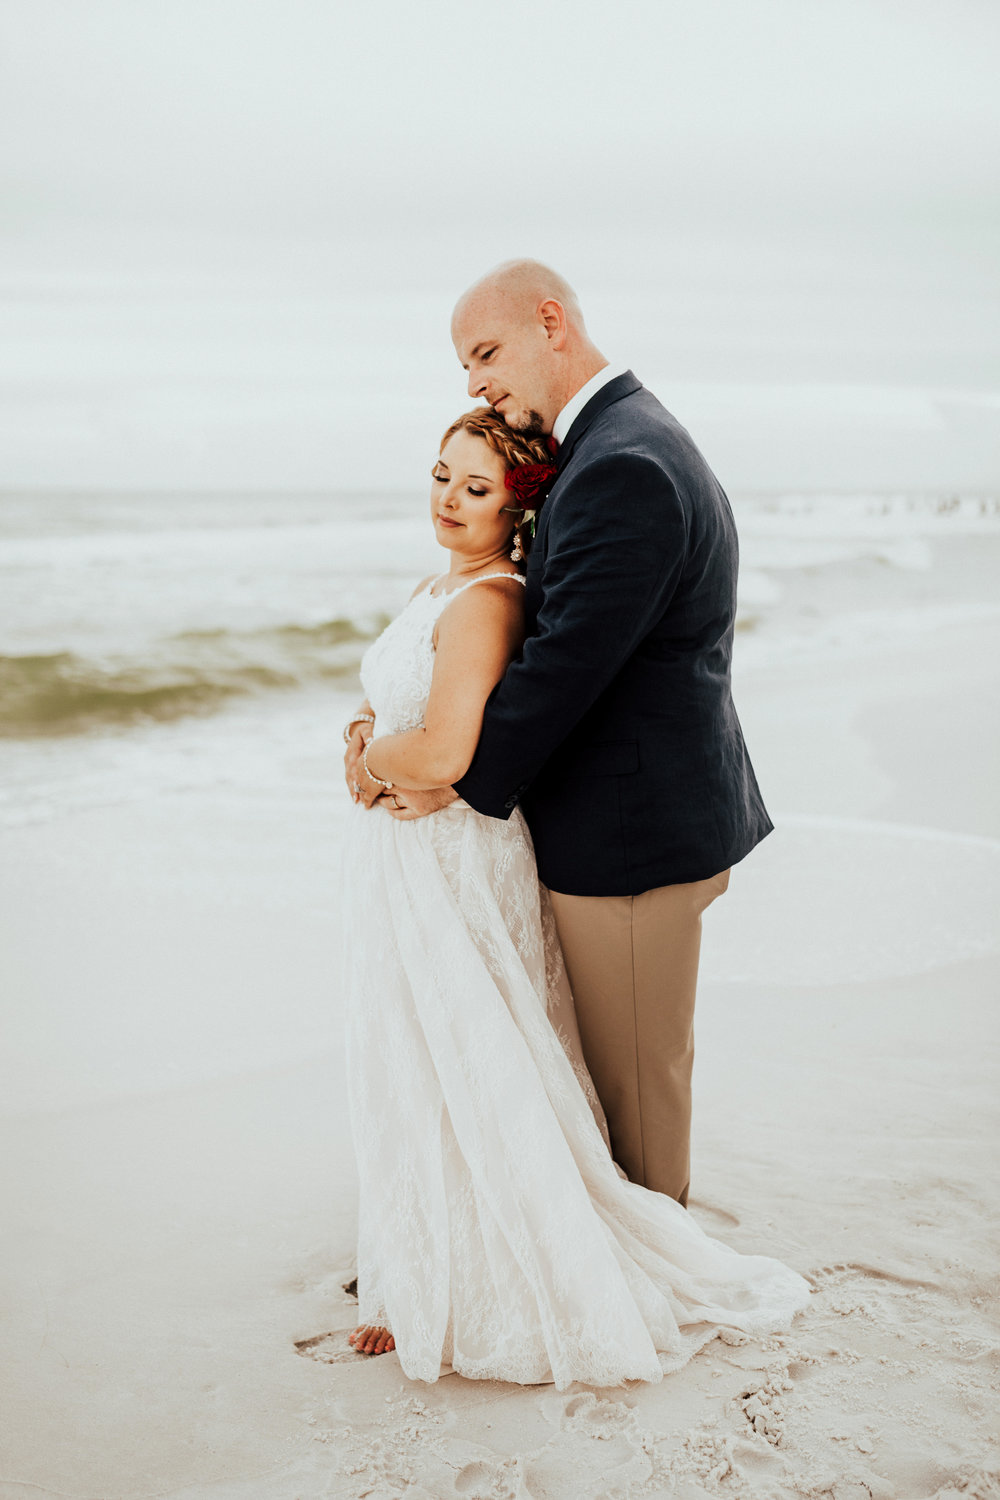 Josh + Olivia (Coming Soon) - Destin, Florida // Wedding